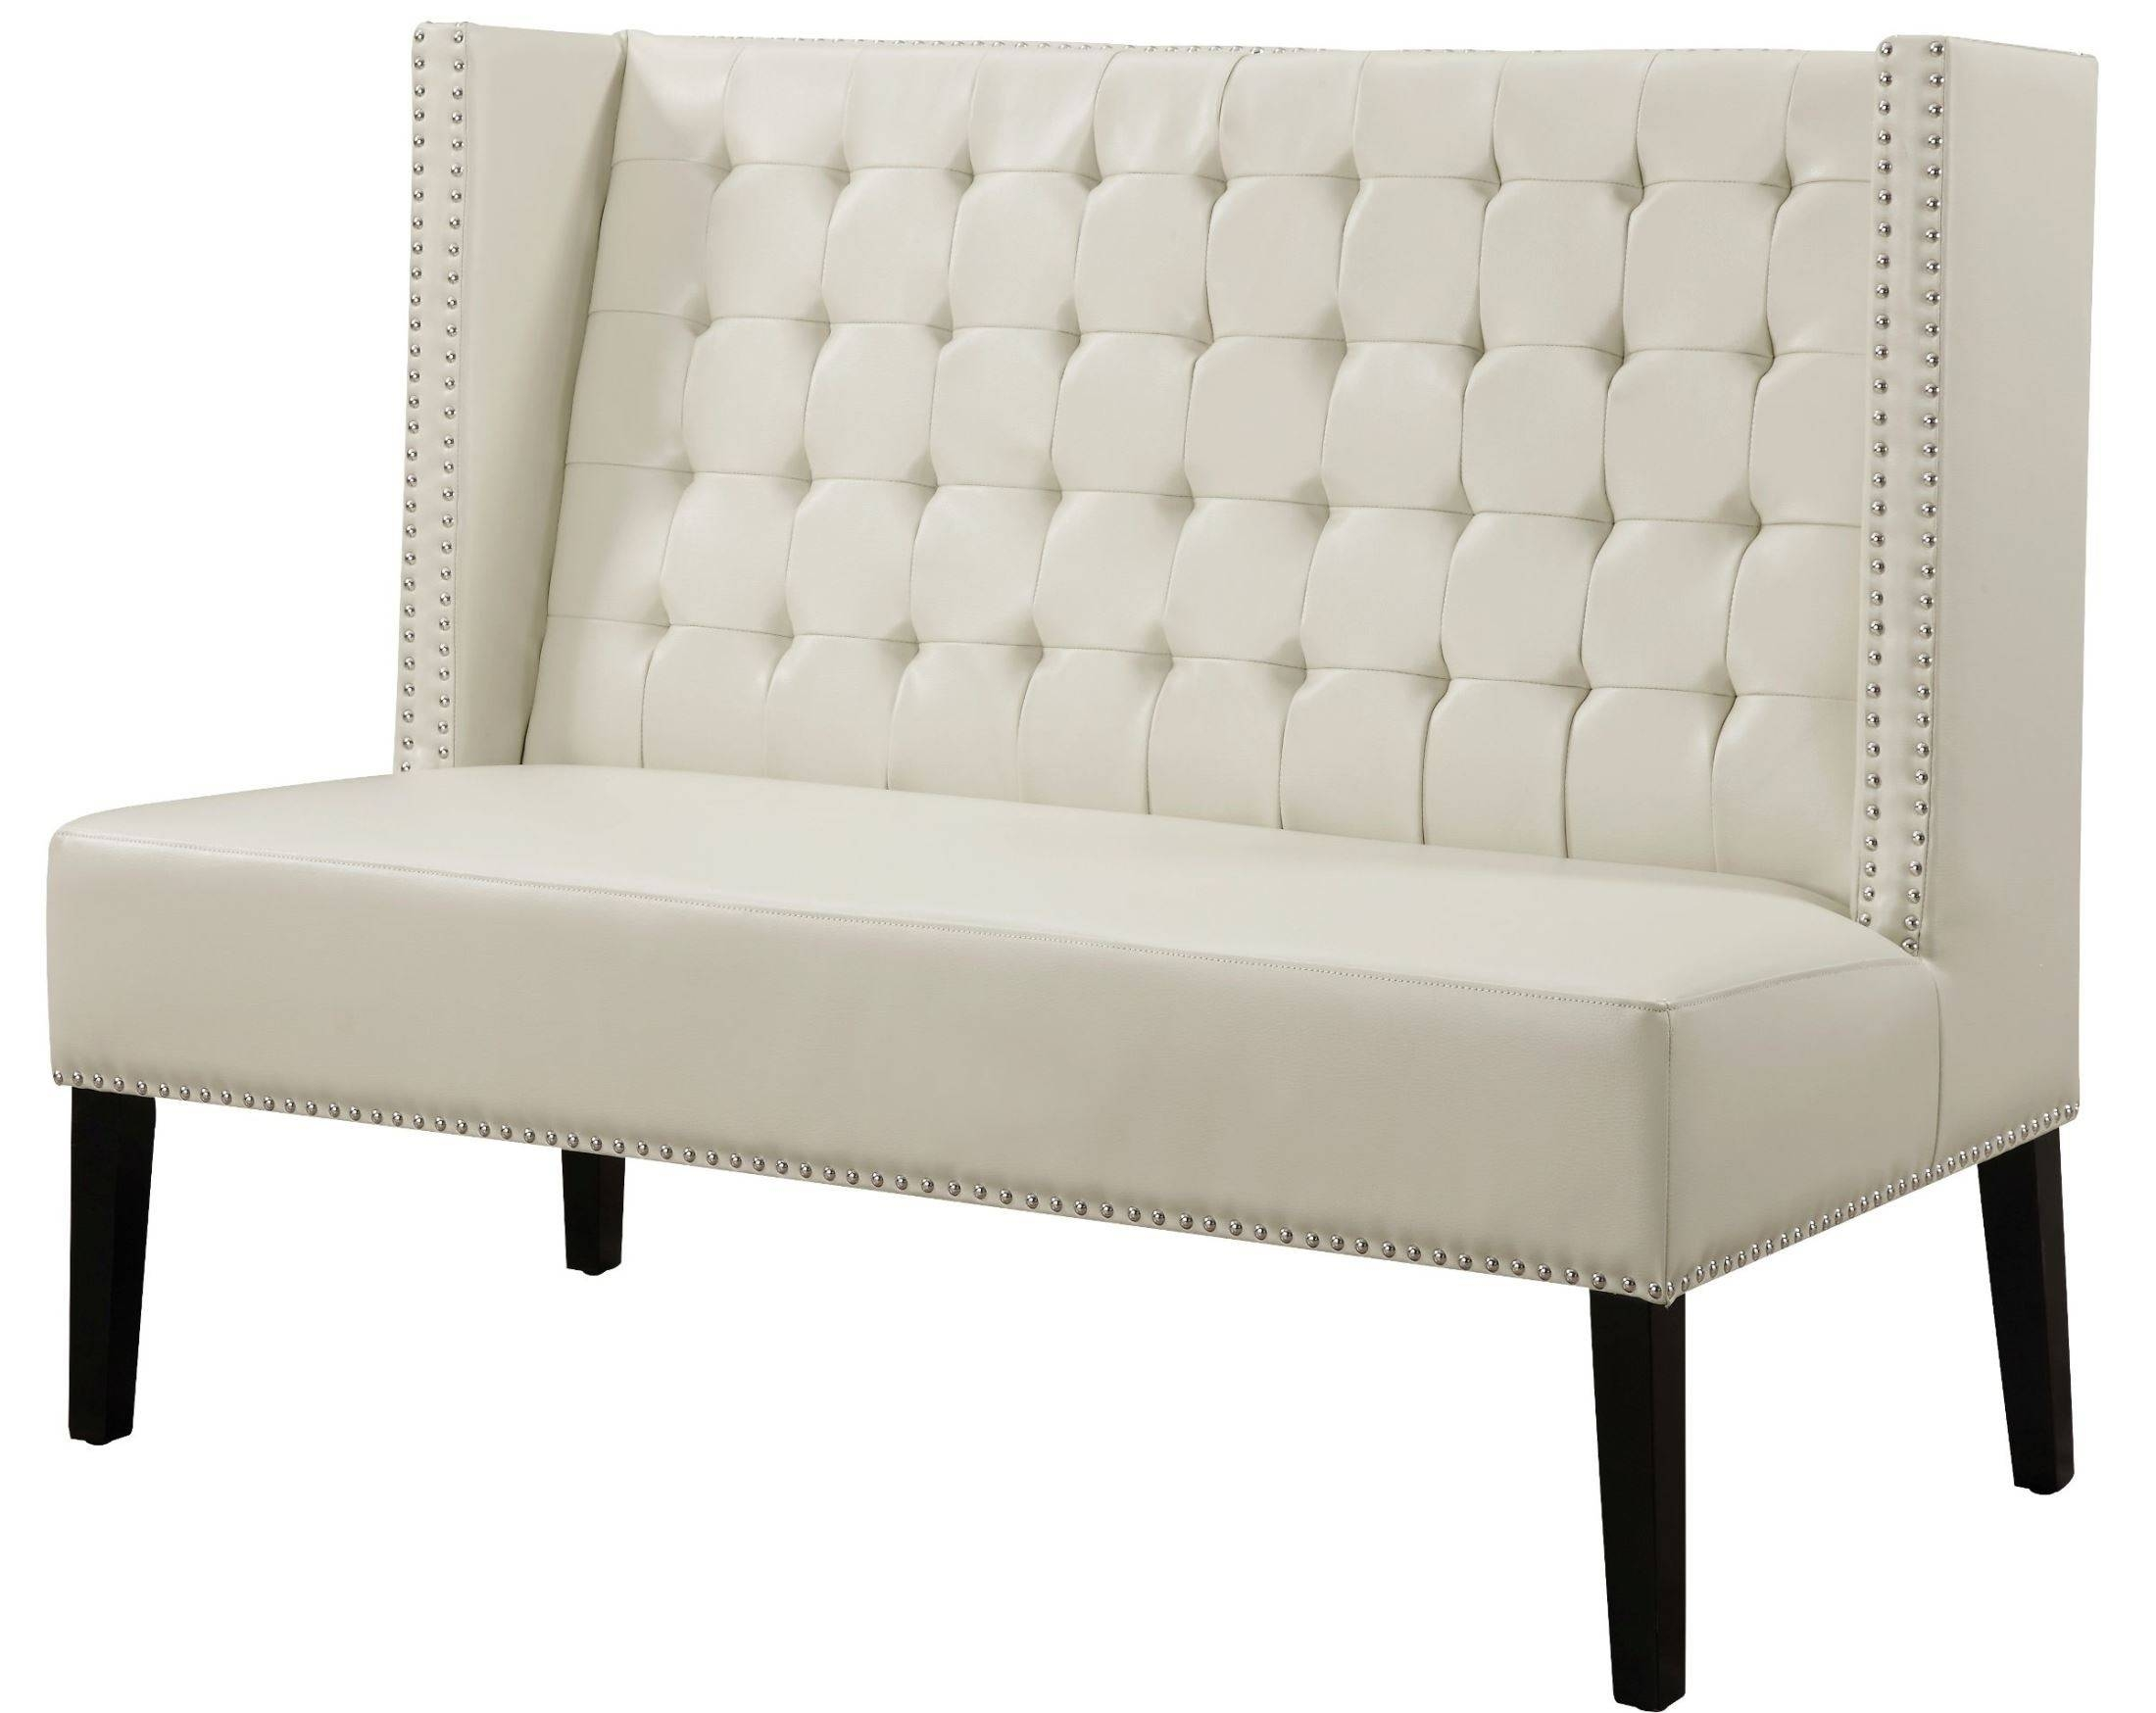 Halifax Cream Leather Banquette Bench From Tov (63115-Cream with Leather Bench Sofas (Image 11 of 30)